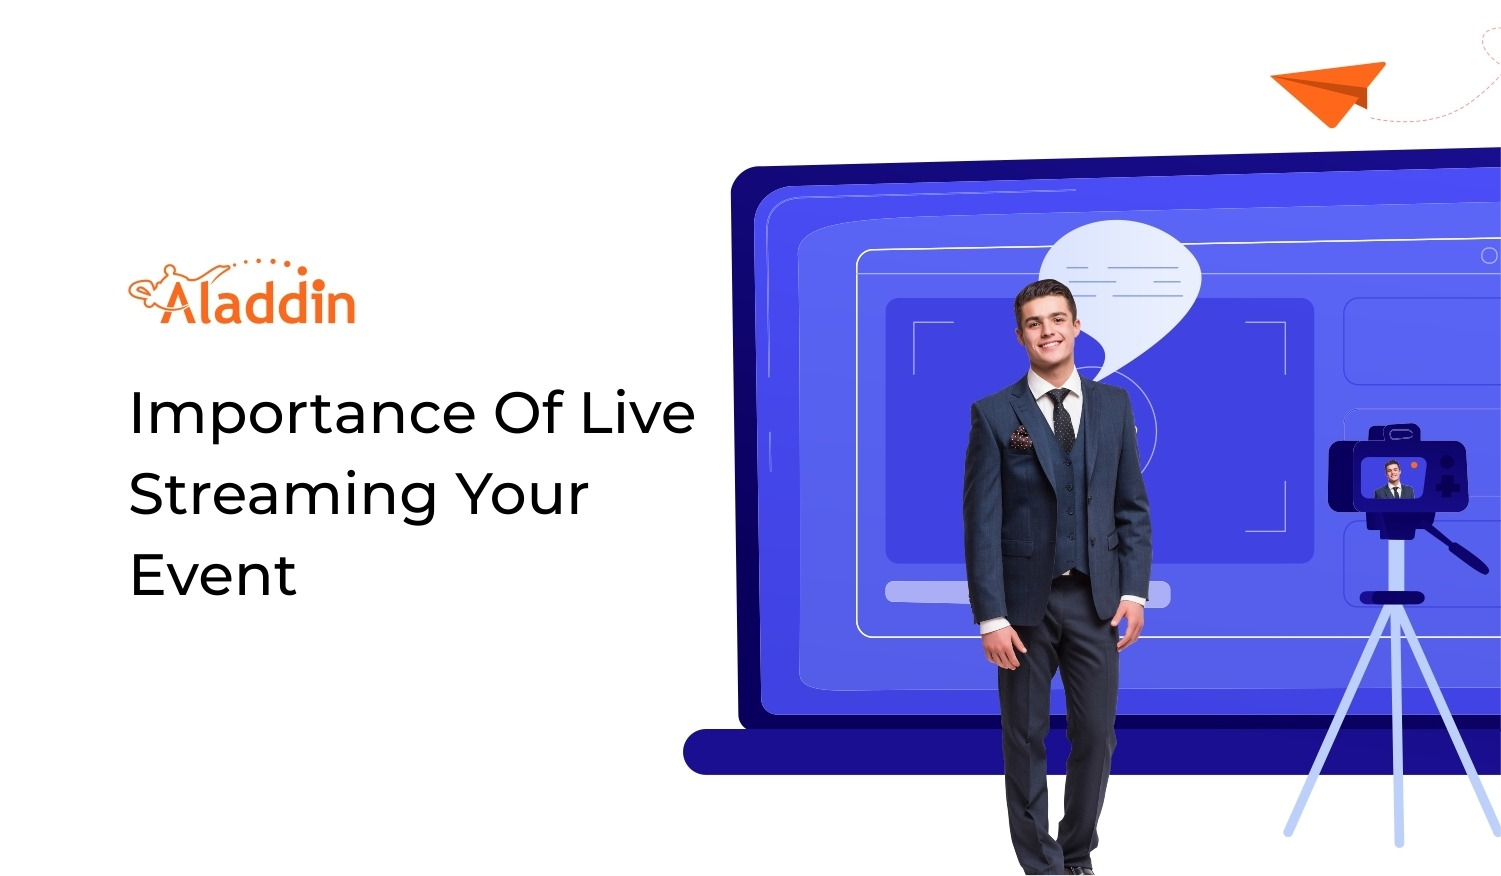 Importance Of Live Streaming Your Event